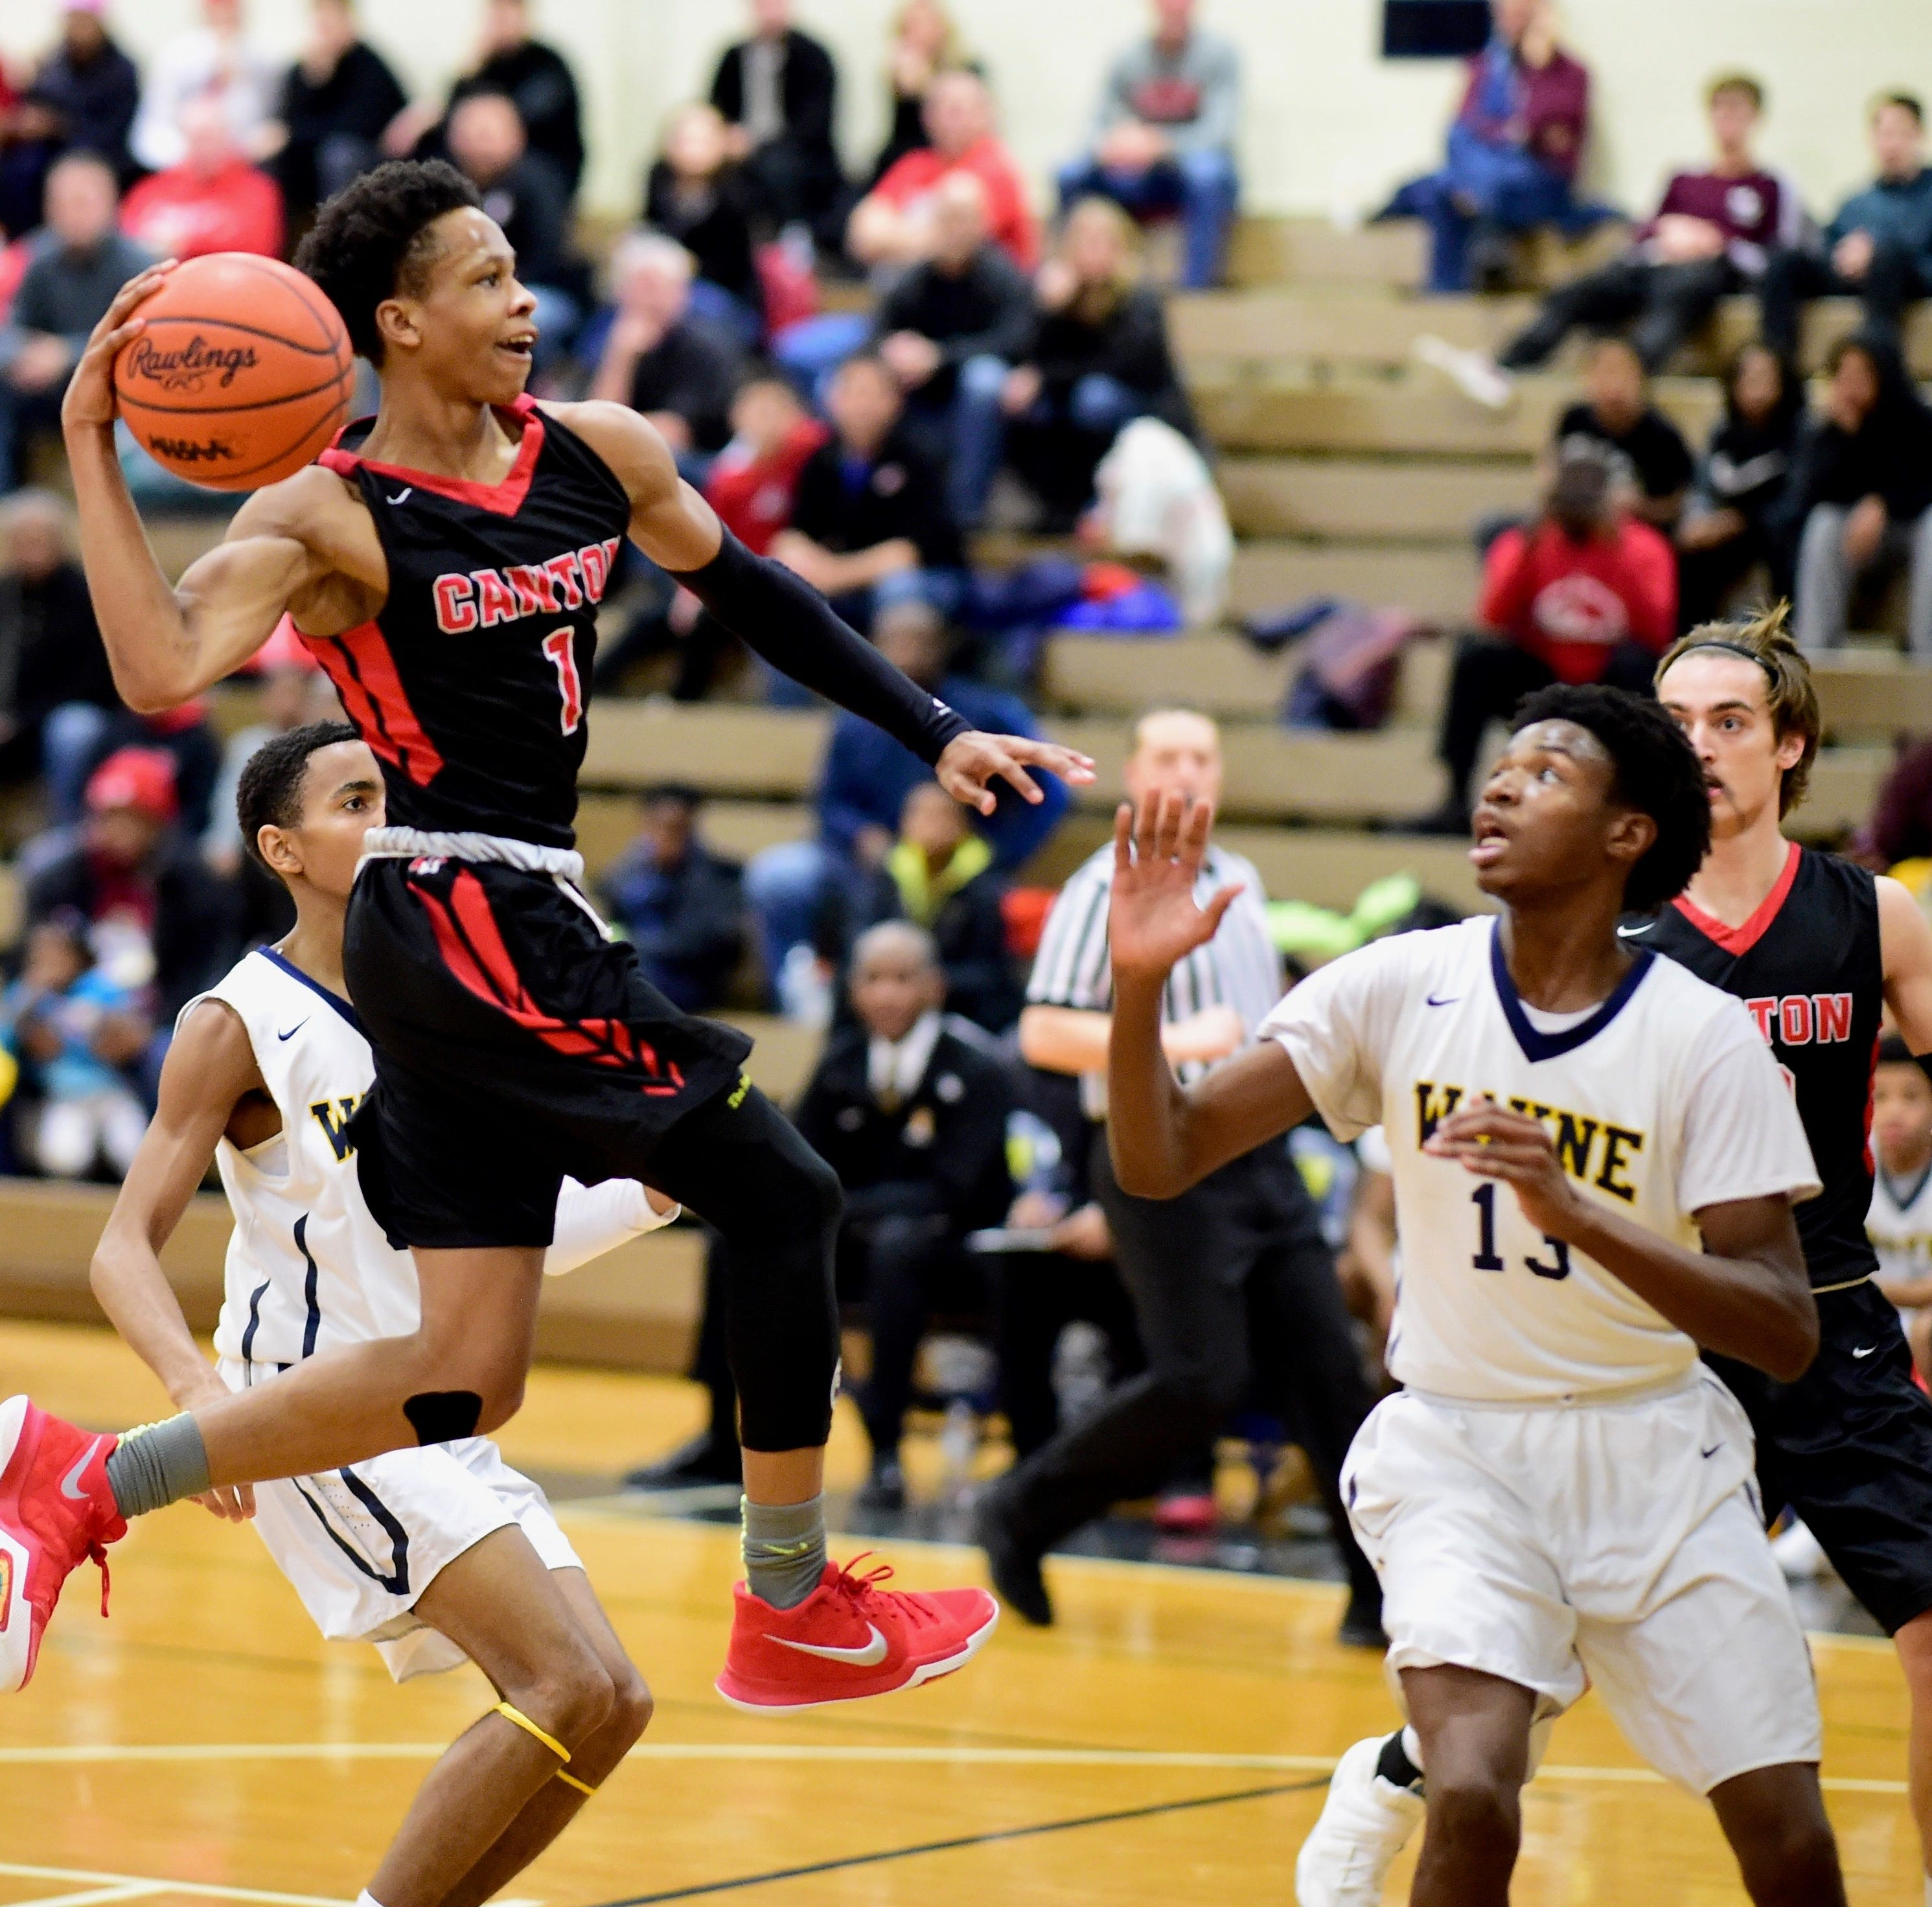 From video games to basketball games, Canton guard B. Artis White a Division I talent